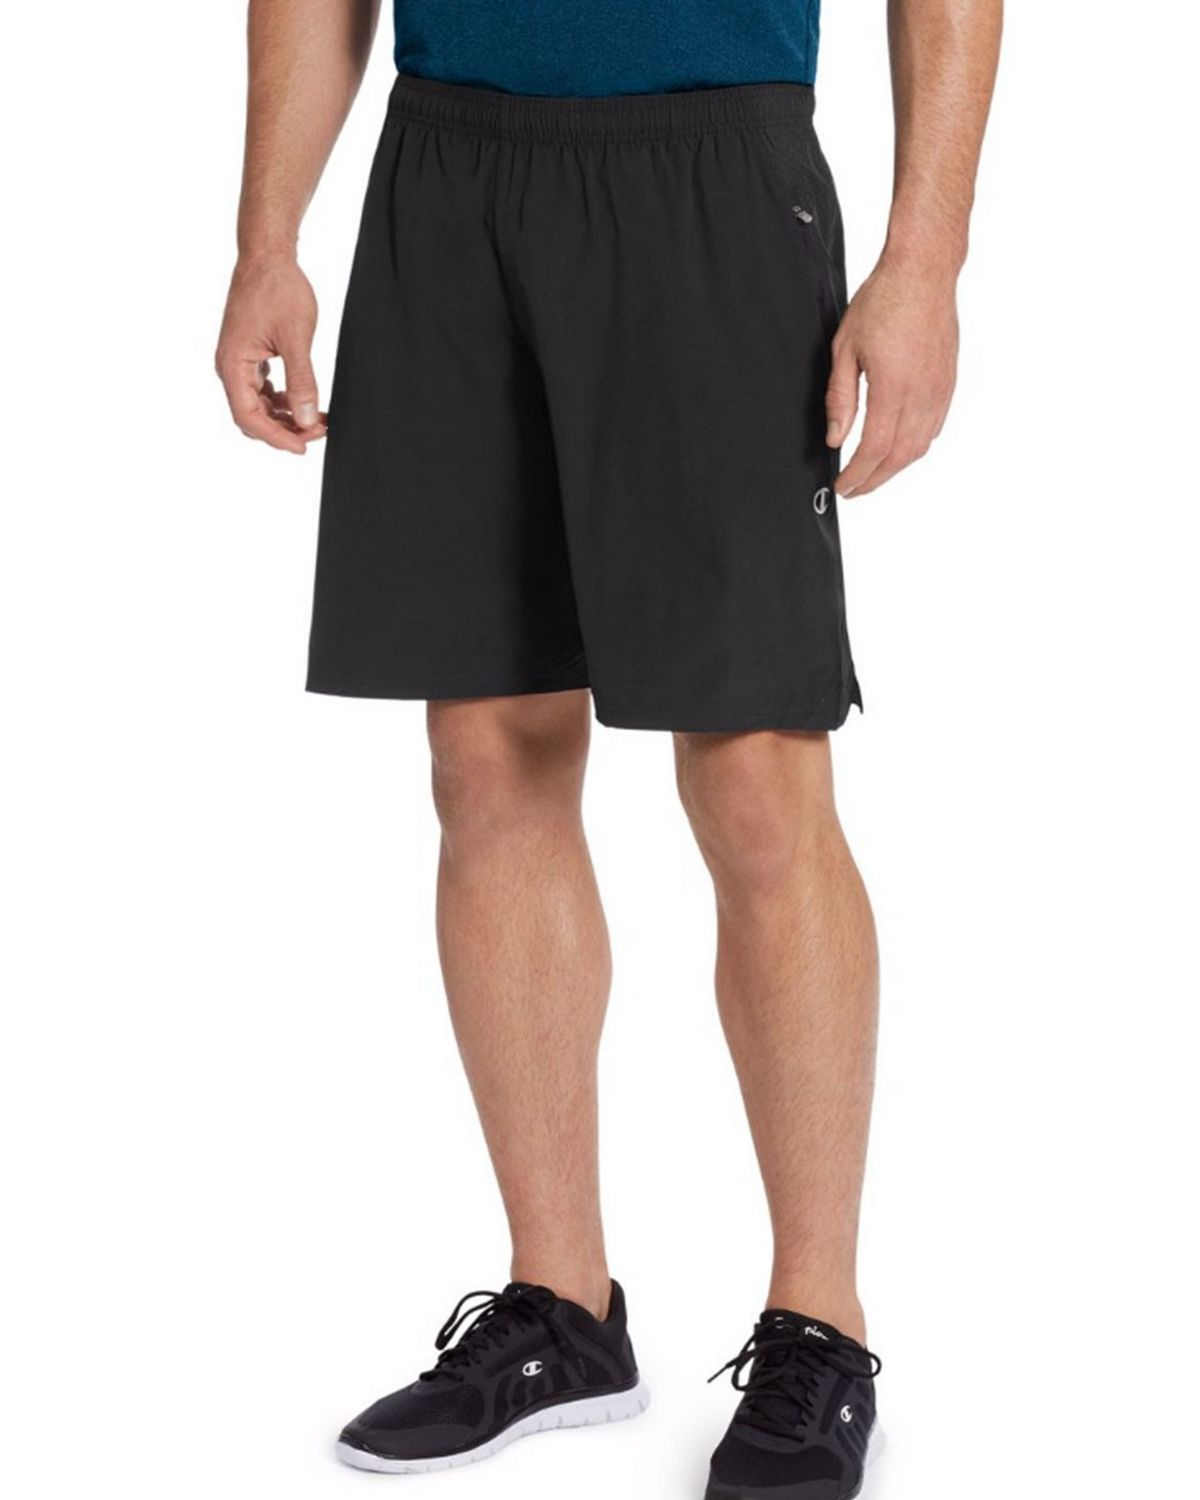 Champion 80046 365 Shorts - Black - S 80046